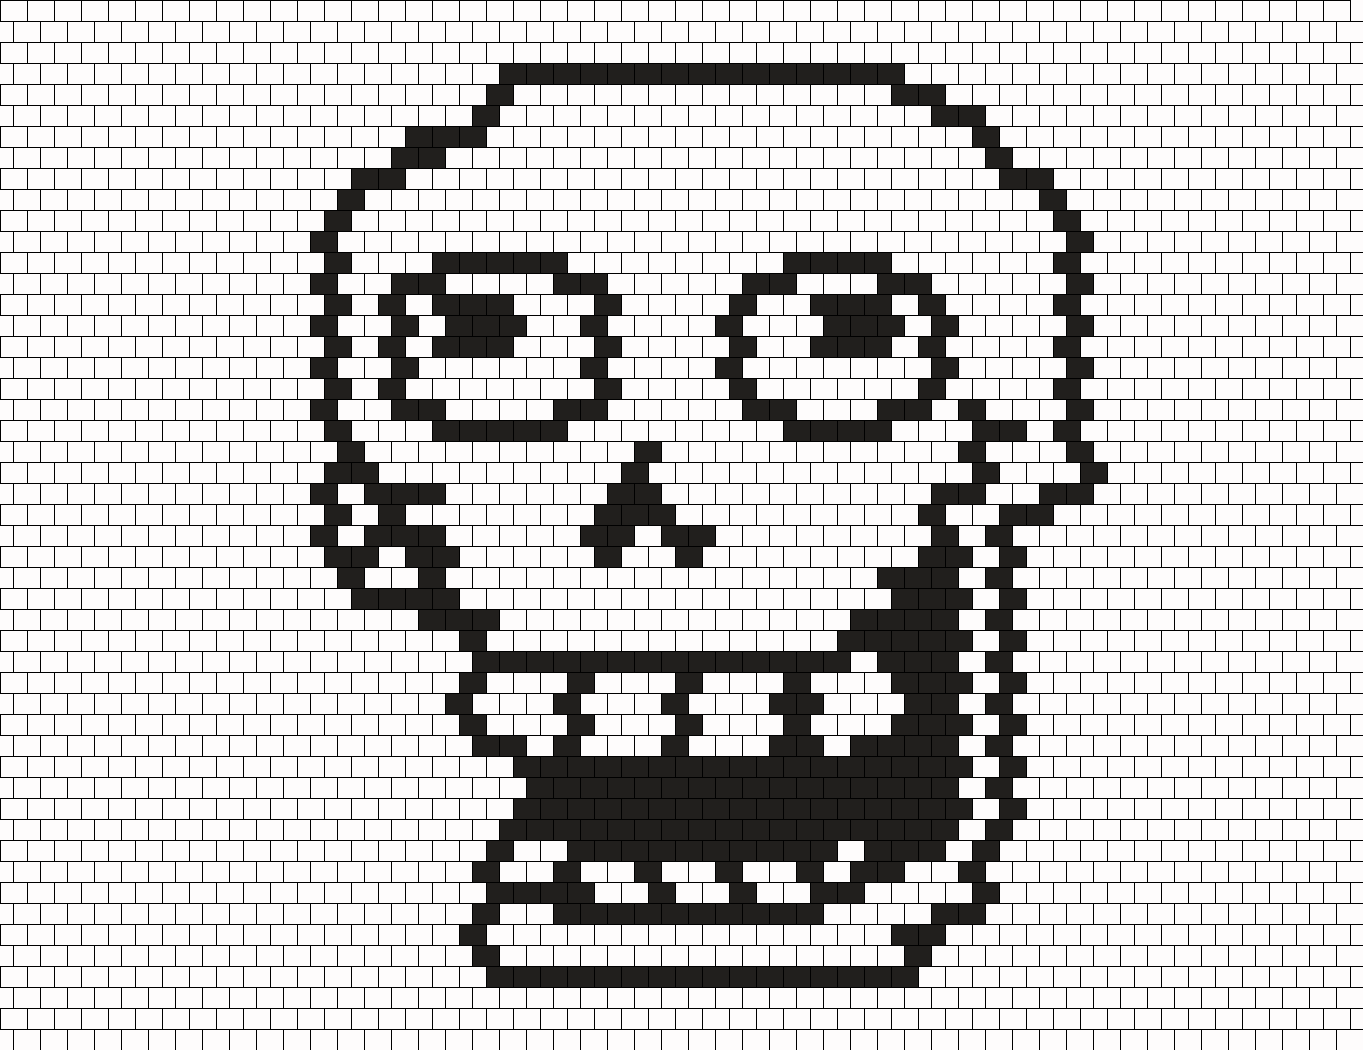 Goofy_Papyrus_Face_Sprite